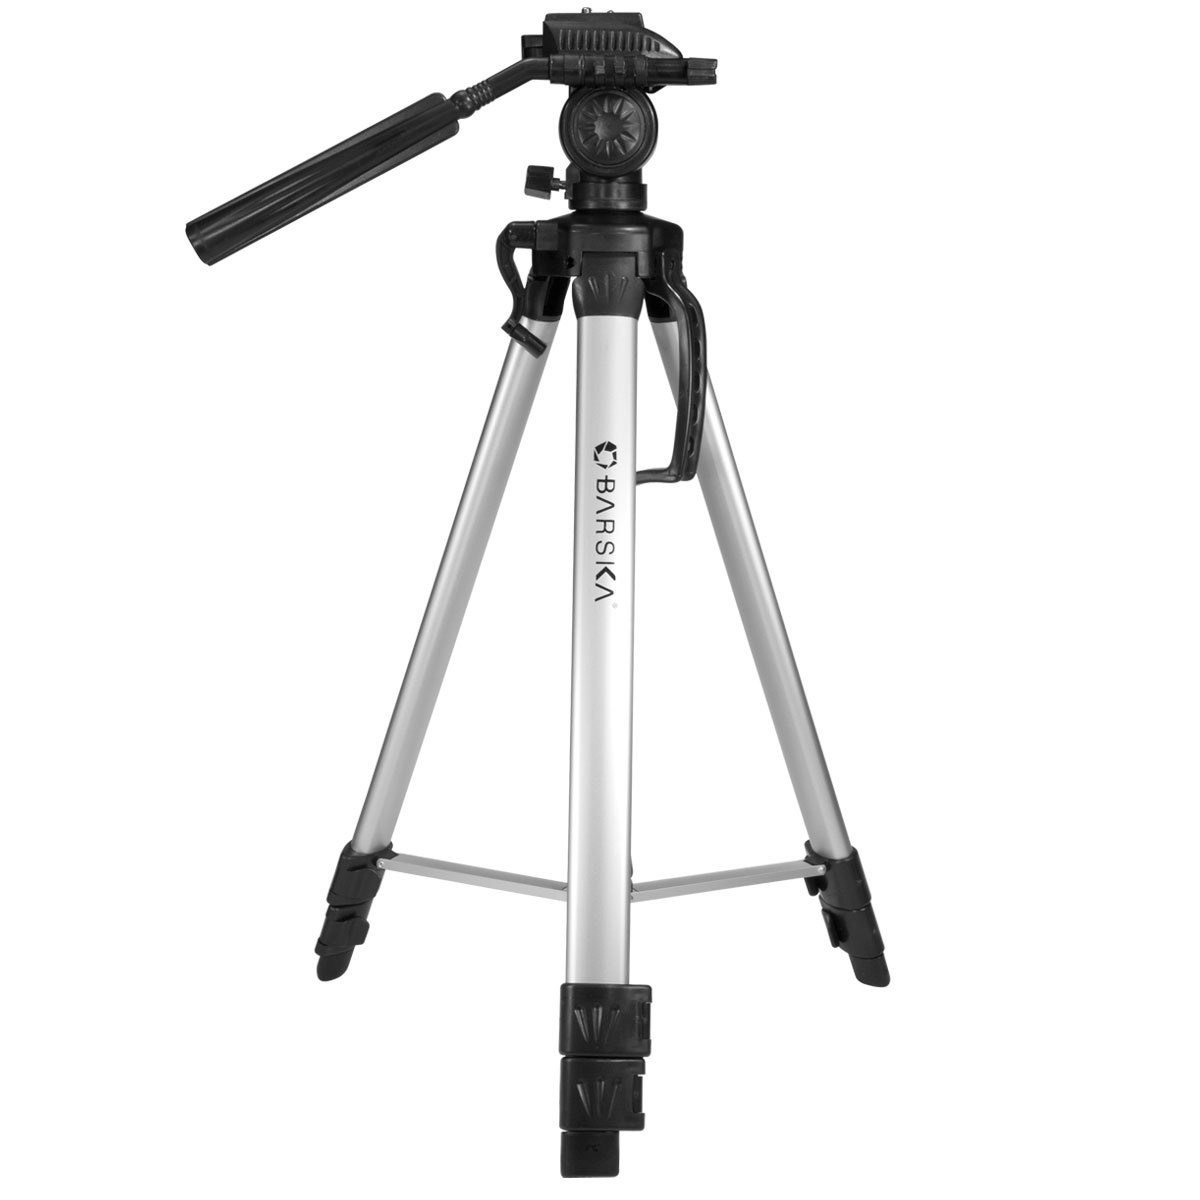 BARSKA Deluxe Tripod Extendable to 63.4'' w/Carrying Case by BARSKA